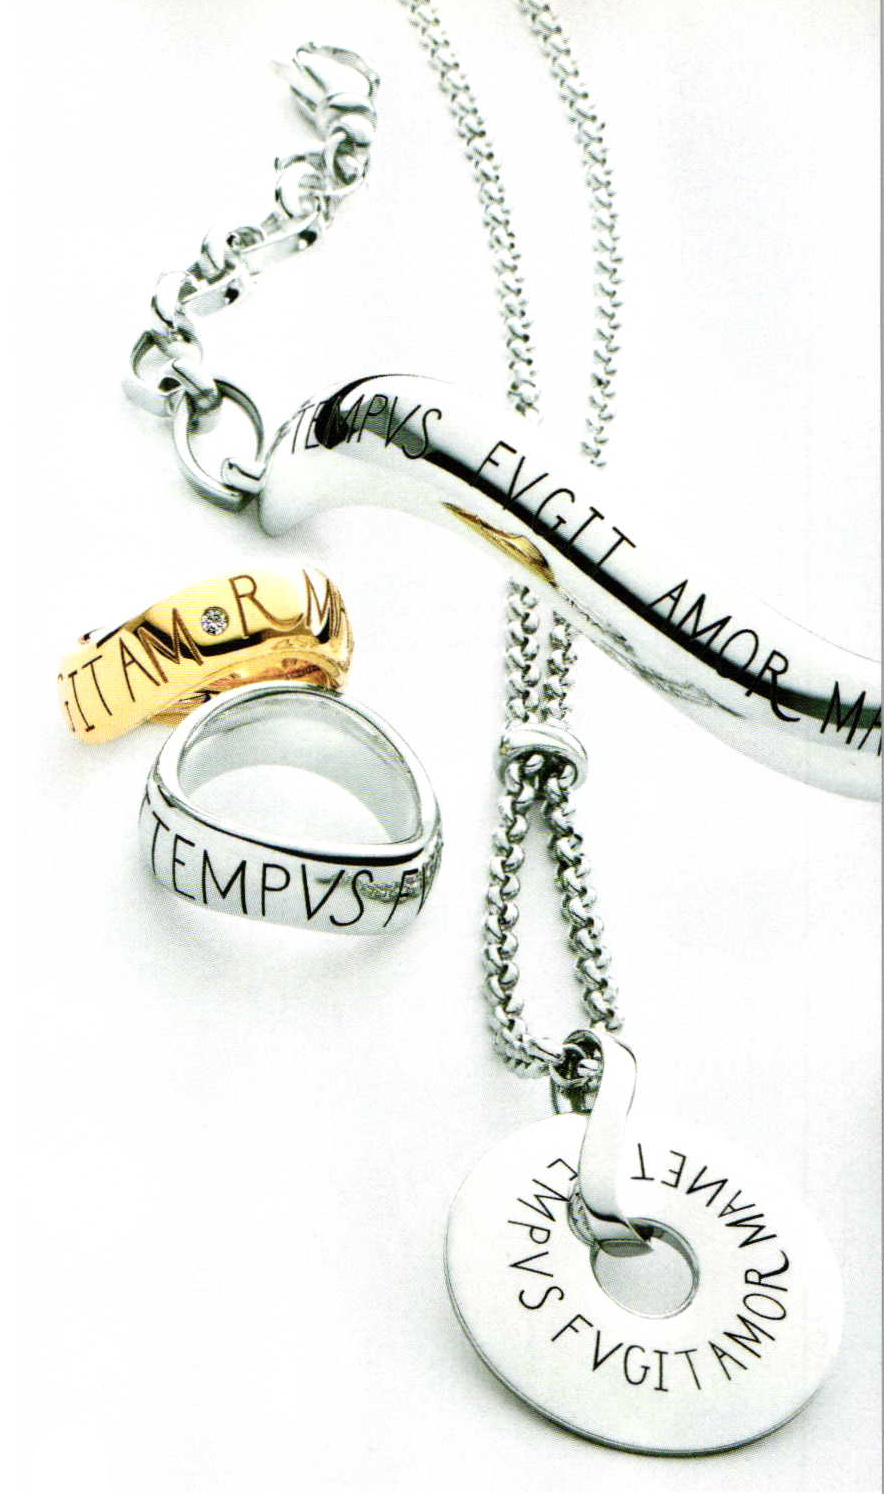 Golden messages ganoksin jewelry making community faithfulness is en vogue in our mercurial age the jewelry in the wempe silver collection is the proof tempus fugit amor manet time passes love abides biocorpaavc